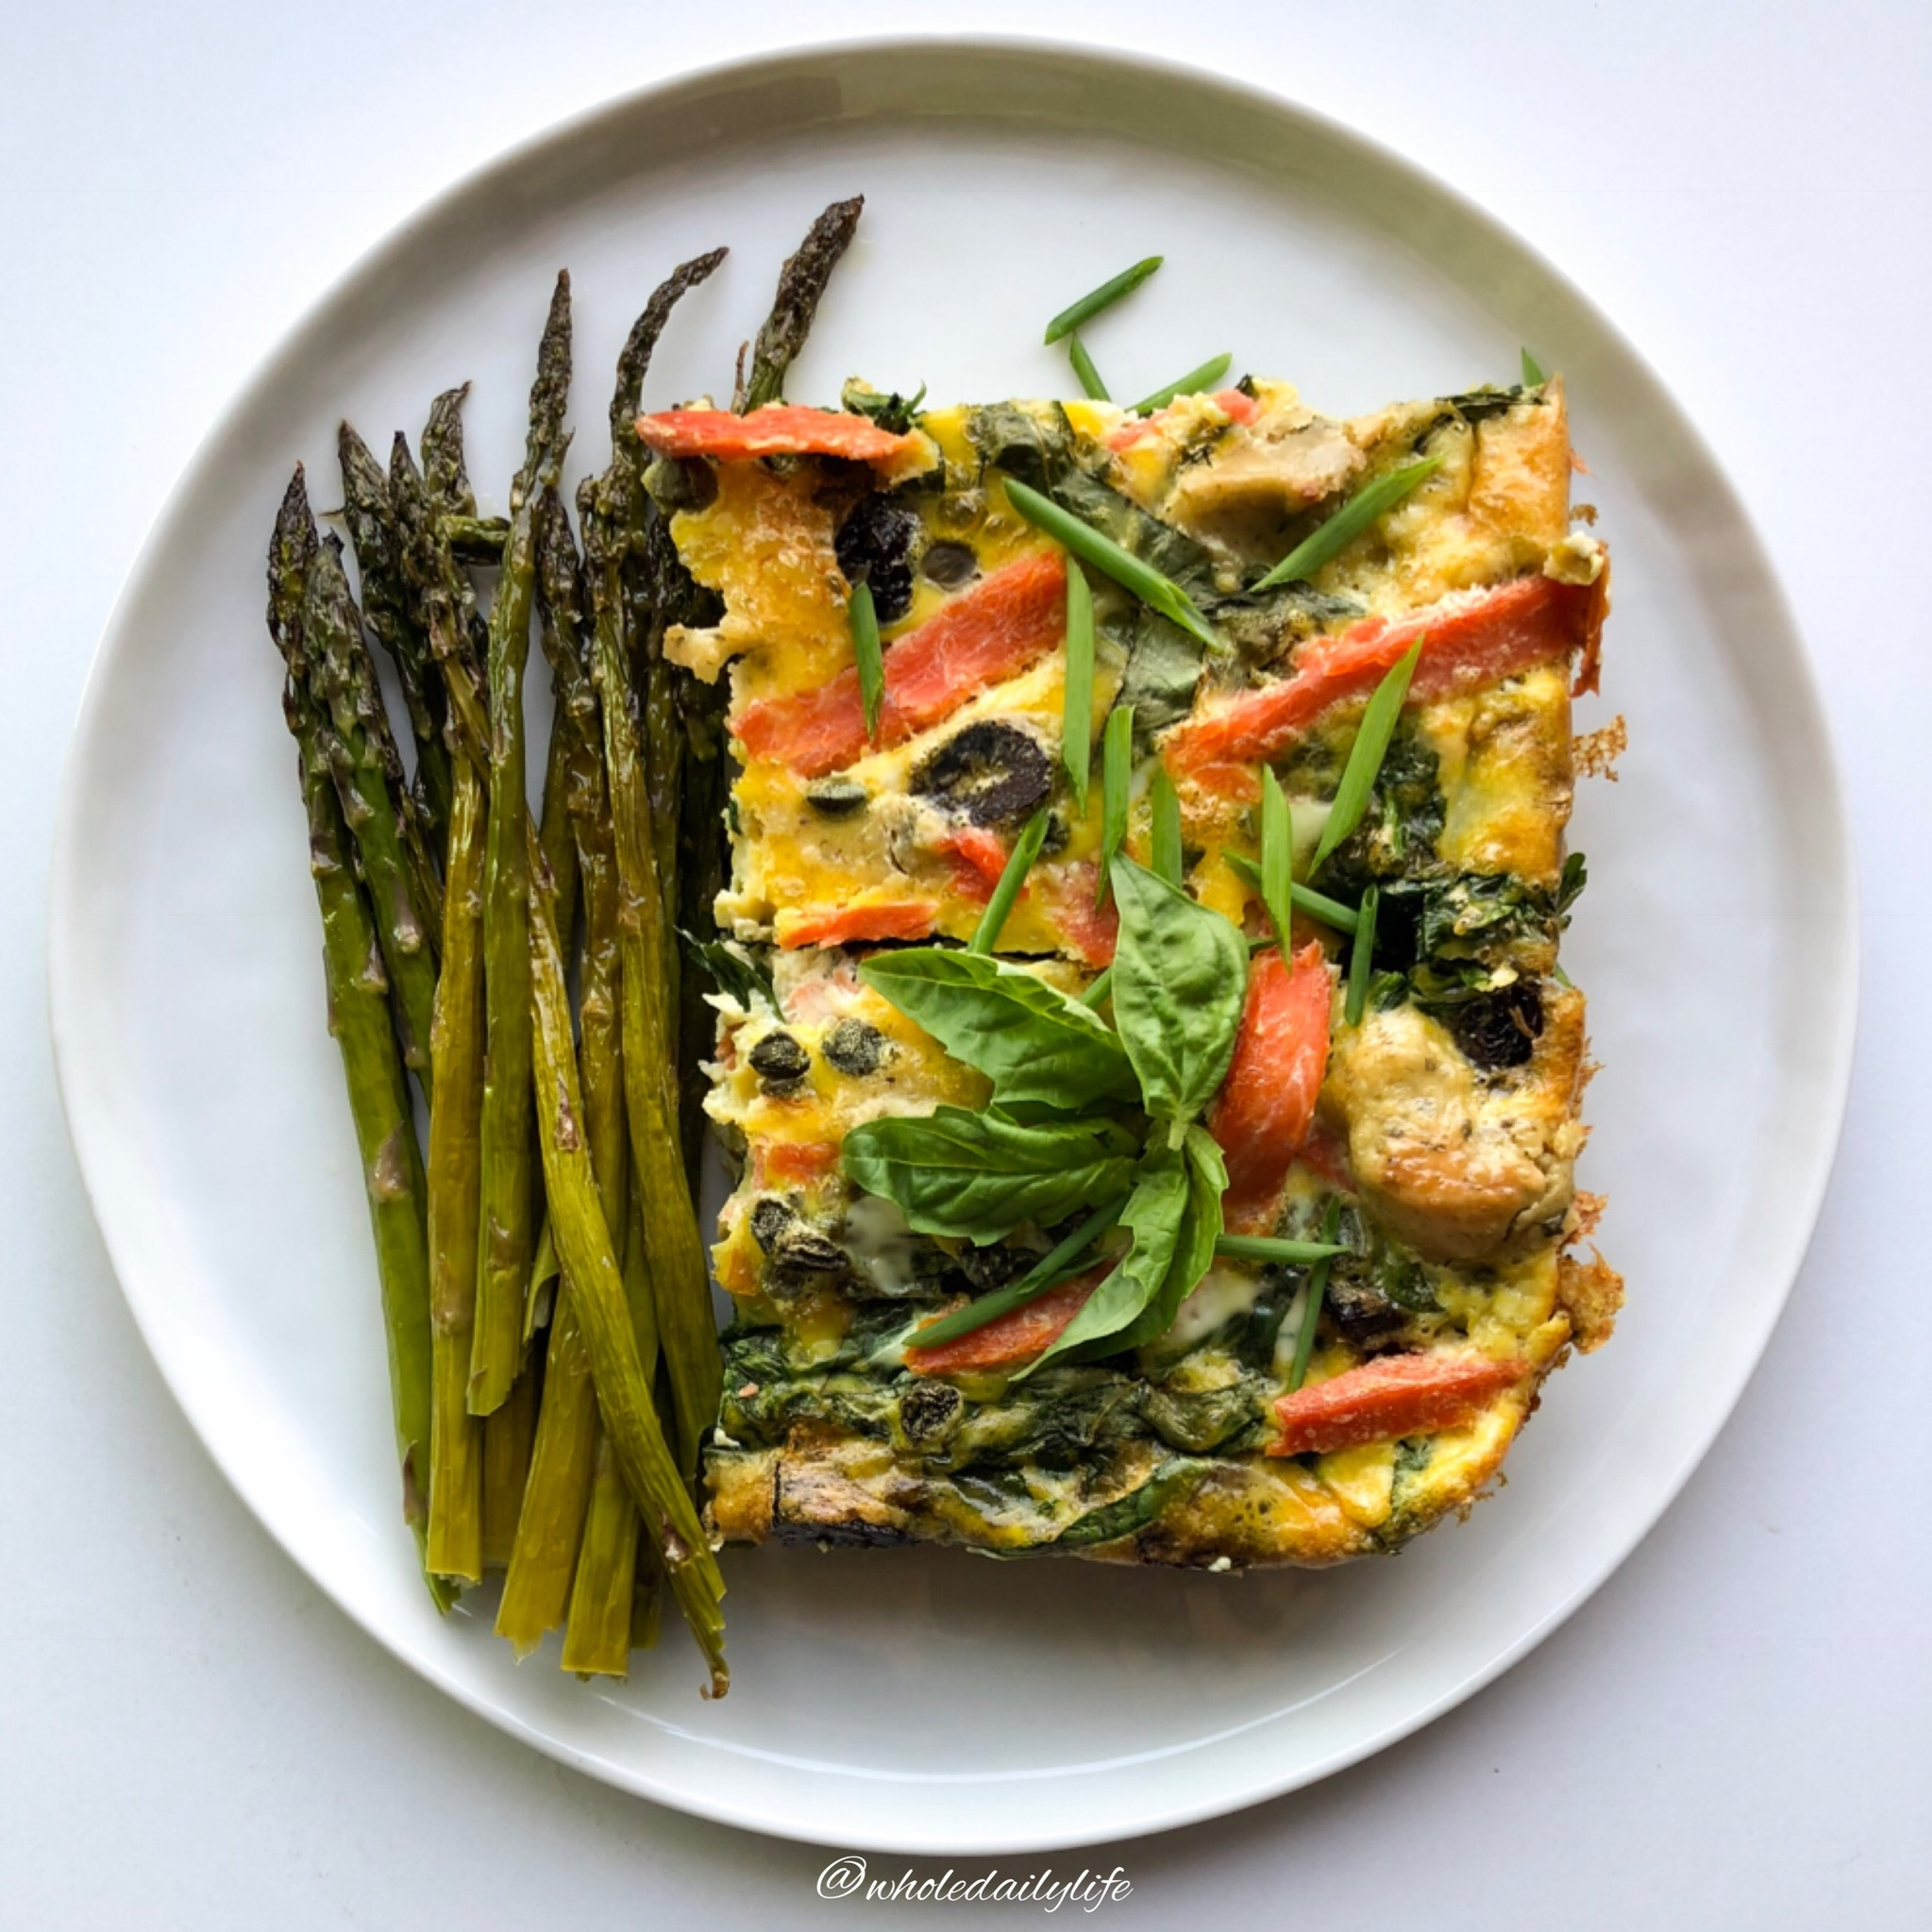 Smoked Salmon and Caper Frittata - The Whole30 compliant meal prep version of a fancy brunch!